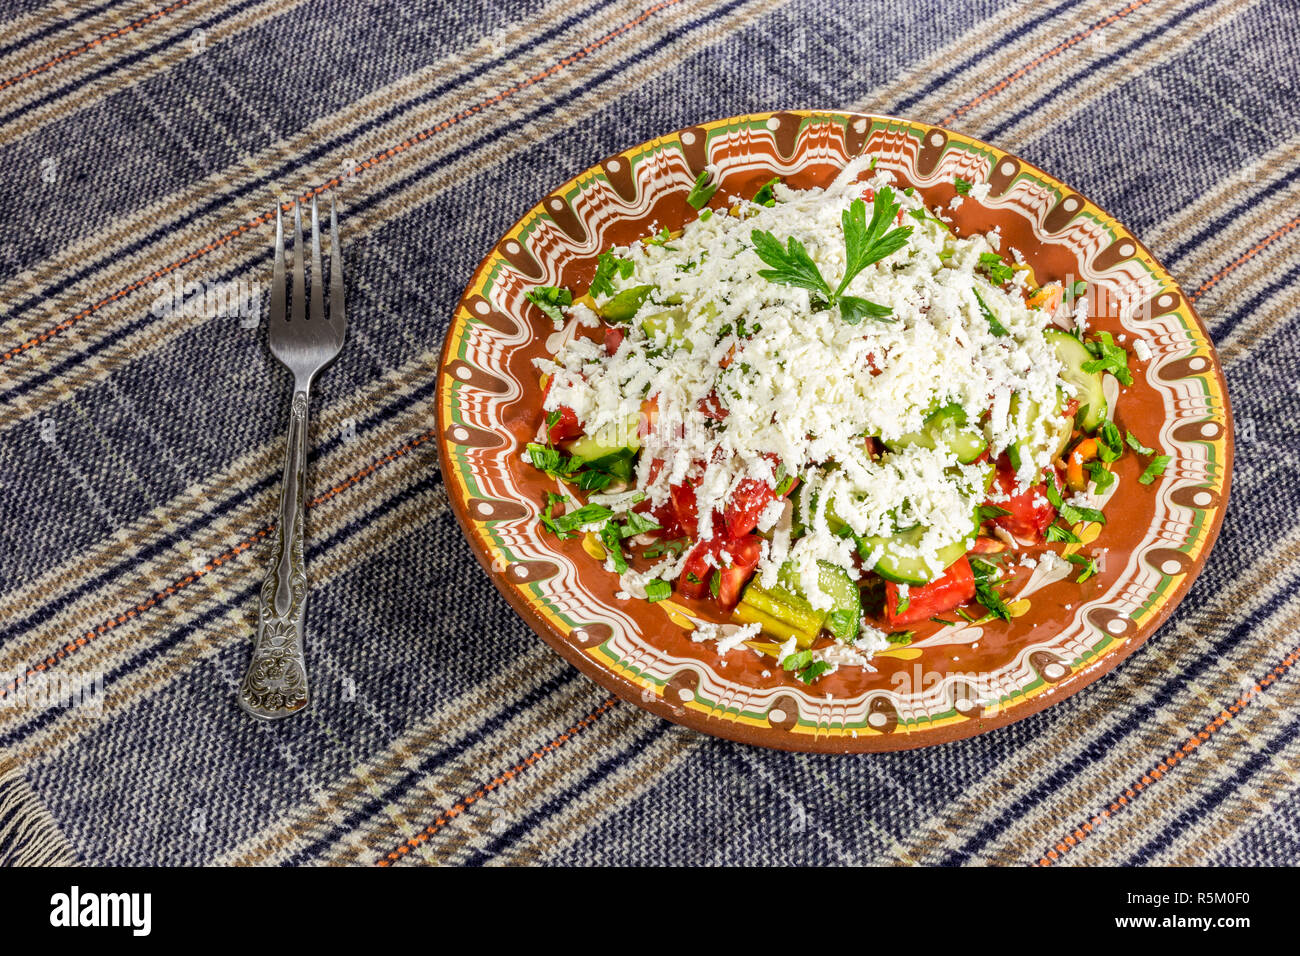 Traditional bulgarian Shopska salad on a table spread. Made by classic recepie. - Stock Image